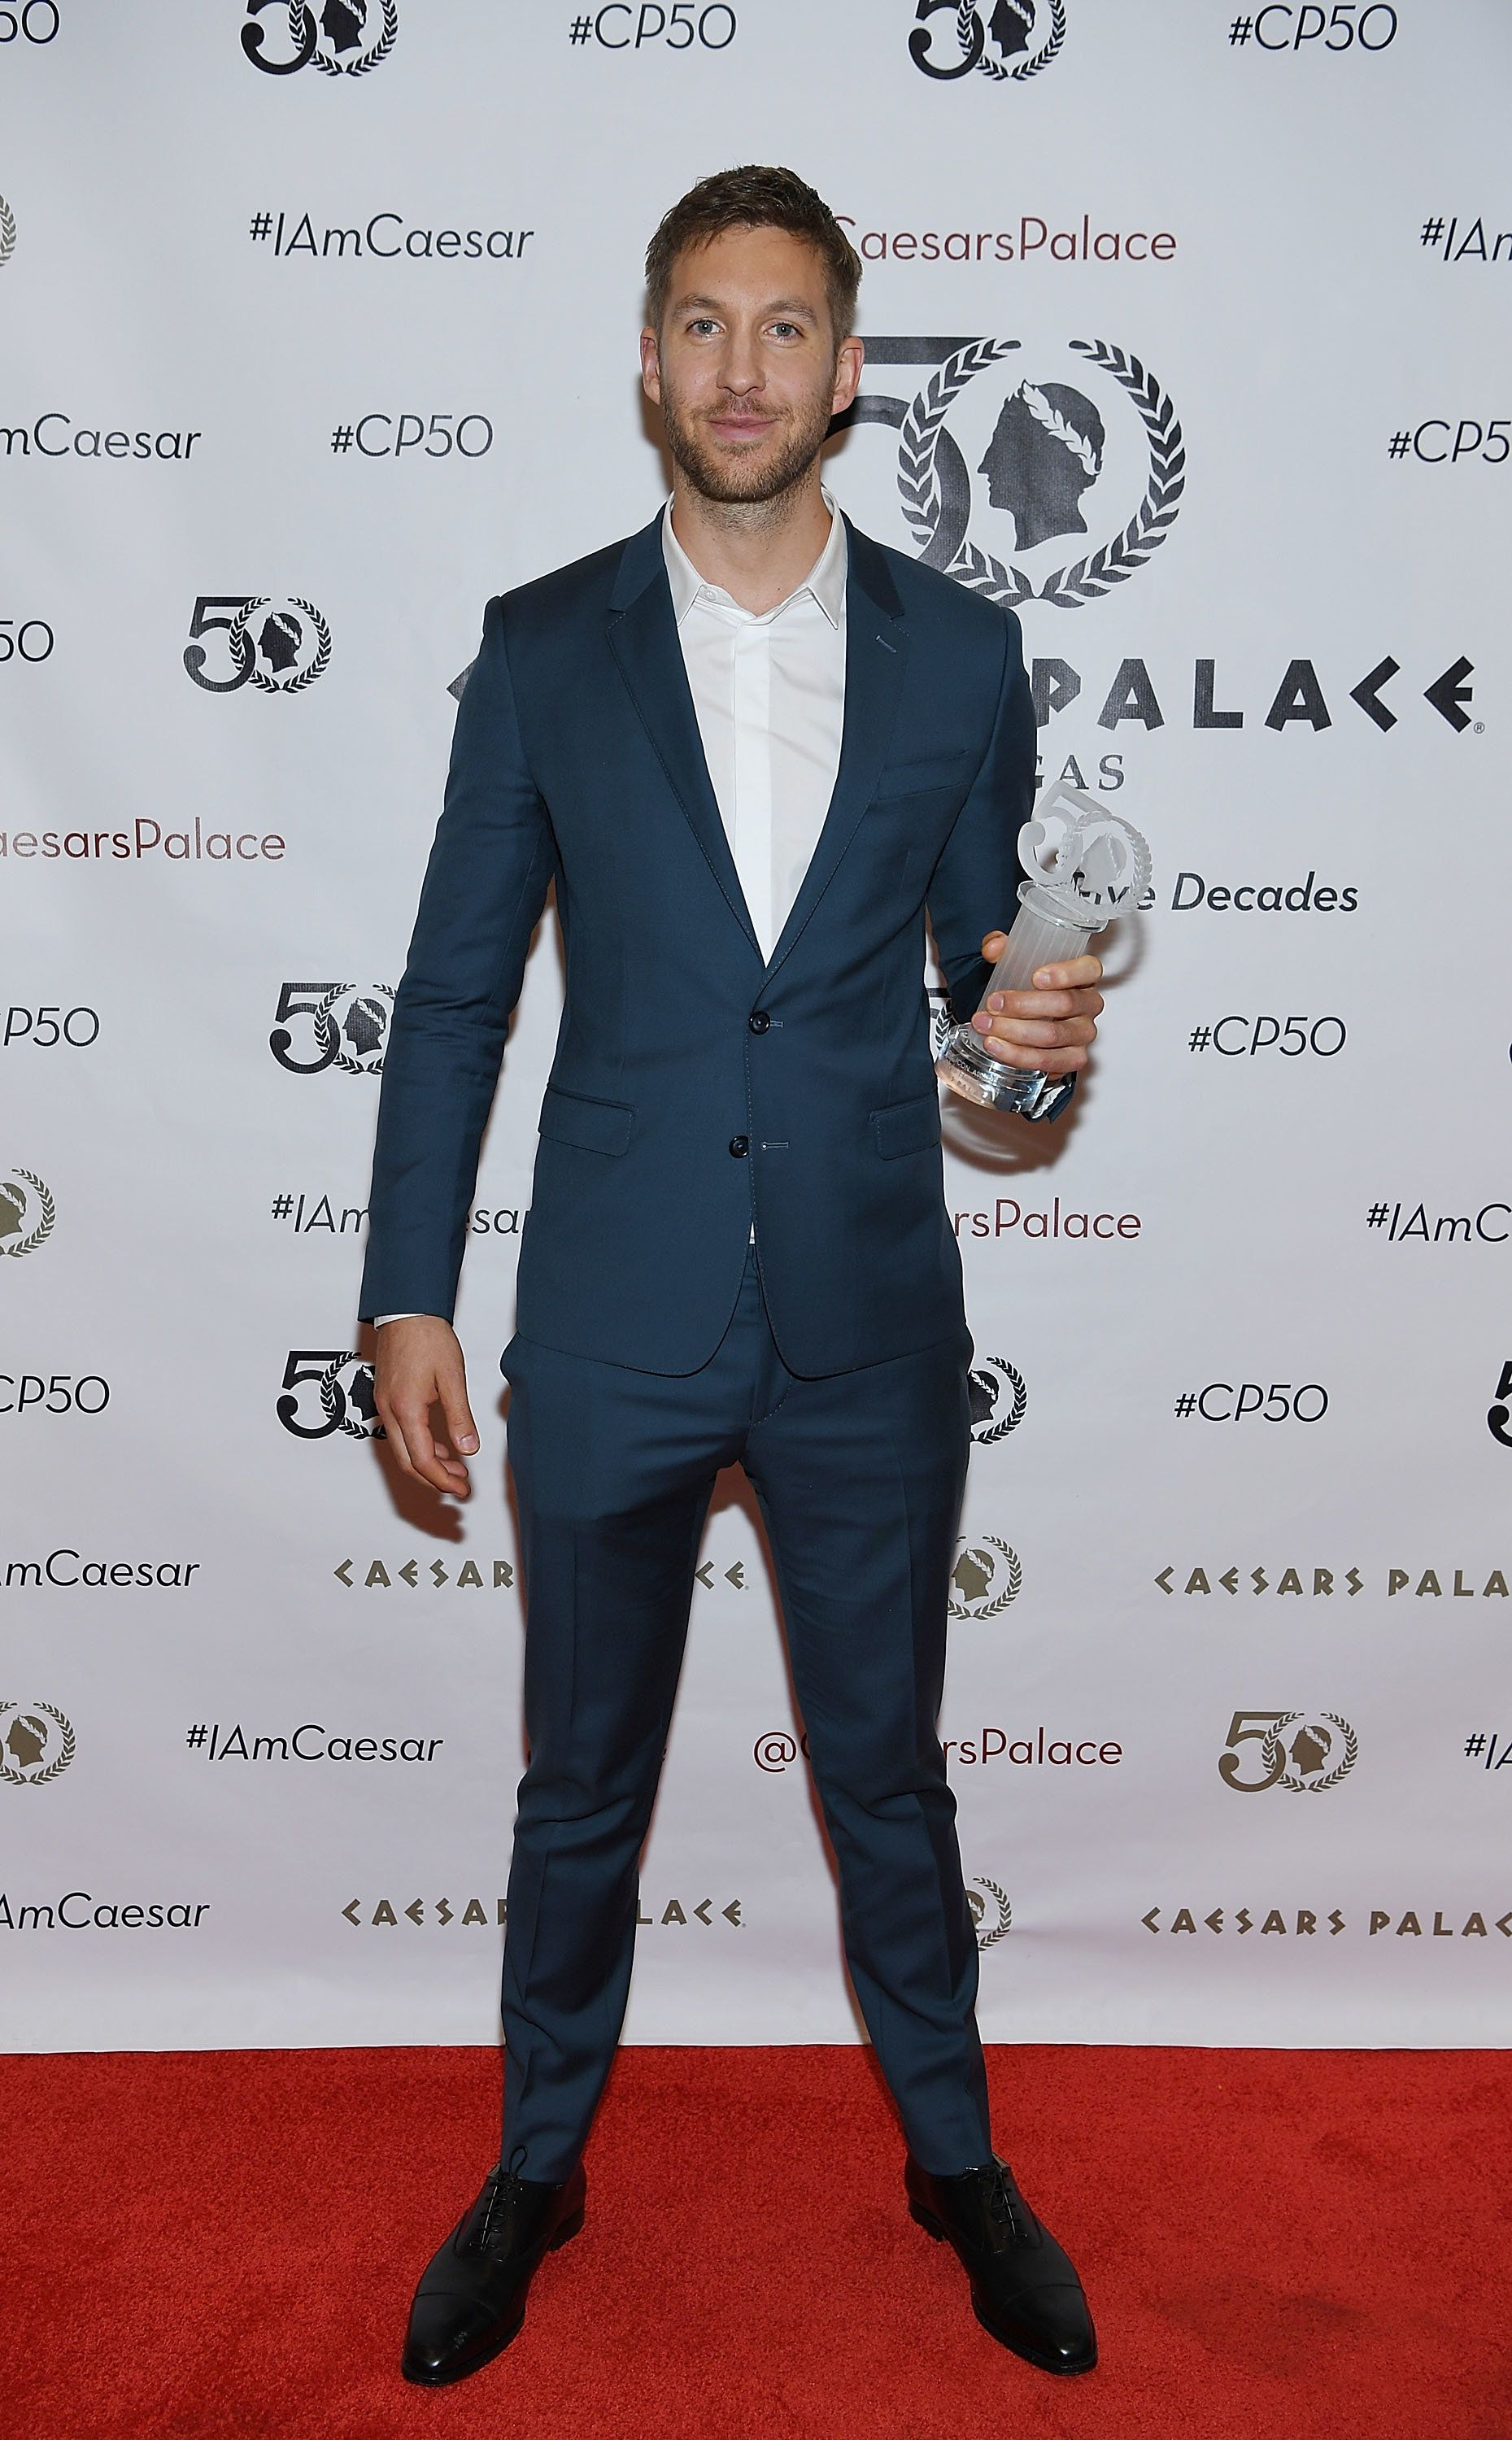 LAS VEGAS, NV - AUGUST 06: Calvin Harris attends the 50th anniversary gala at Caesars Palace on August 6, 2016 in Las Vegas, Nevada. (Photo by Denise Truscello/Getty Images for Caesars Palace)